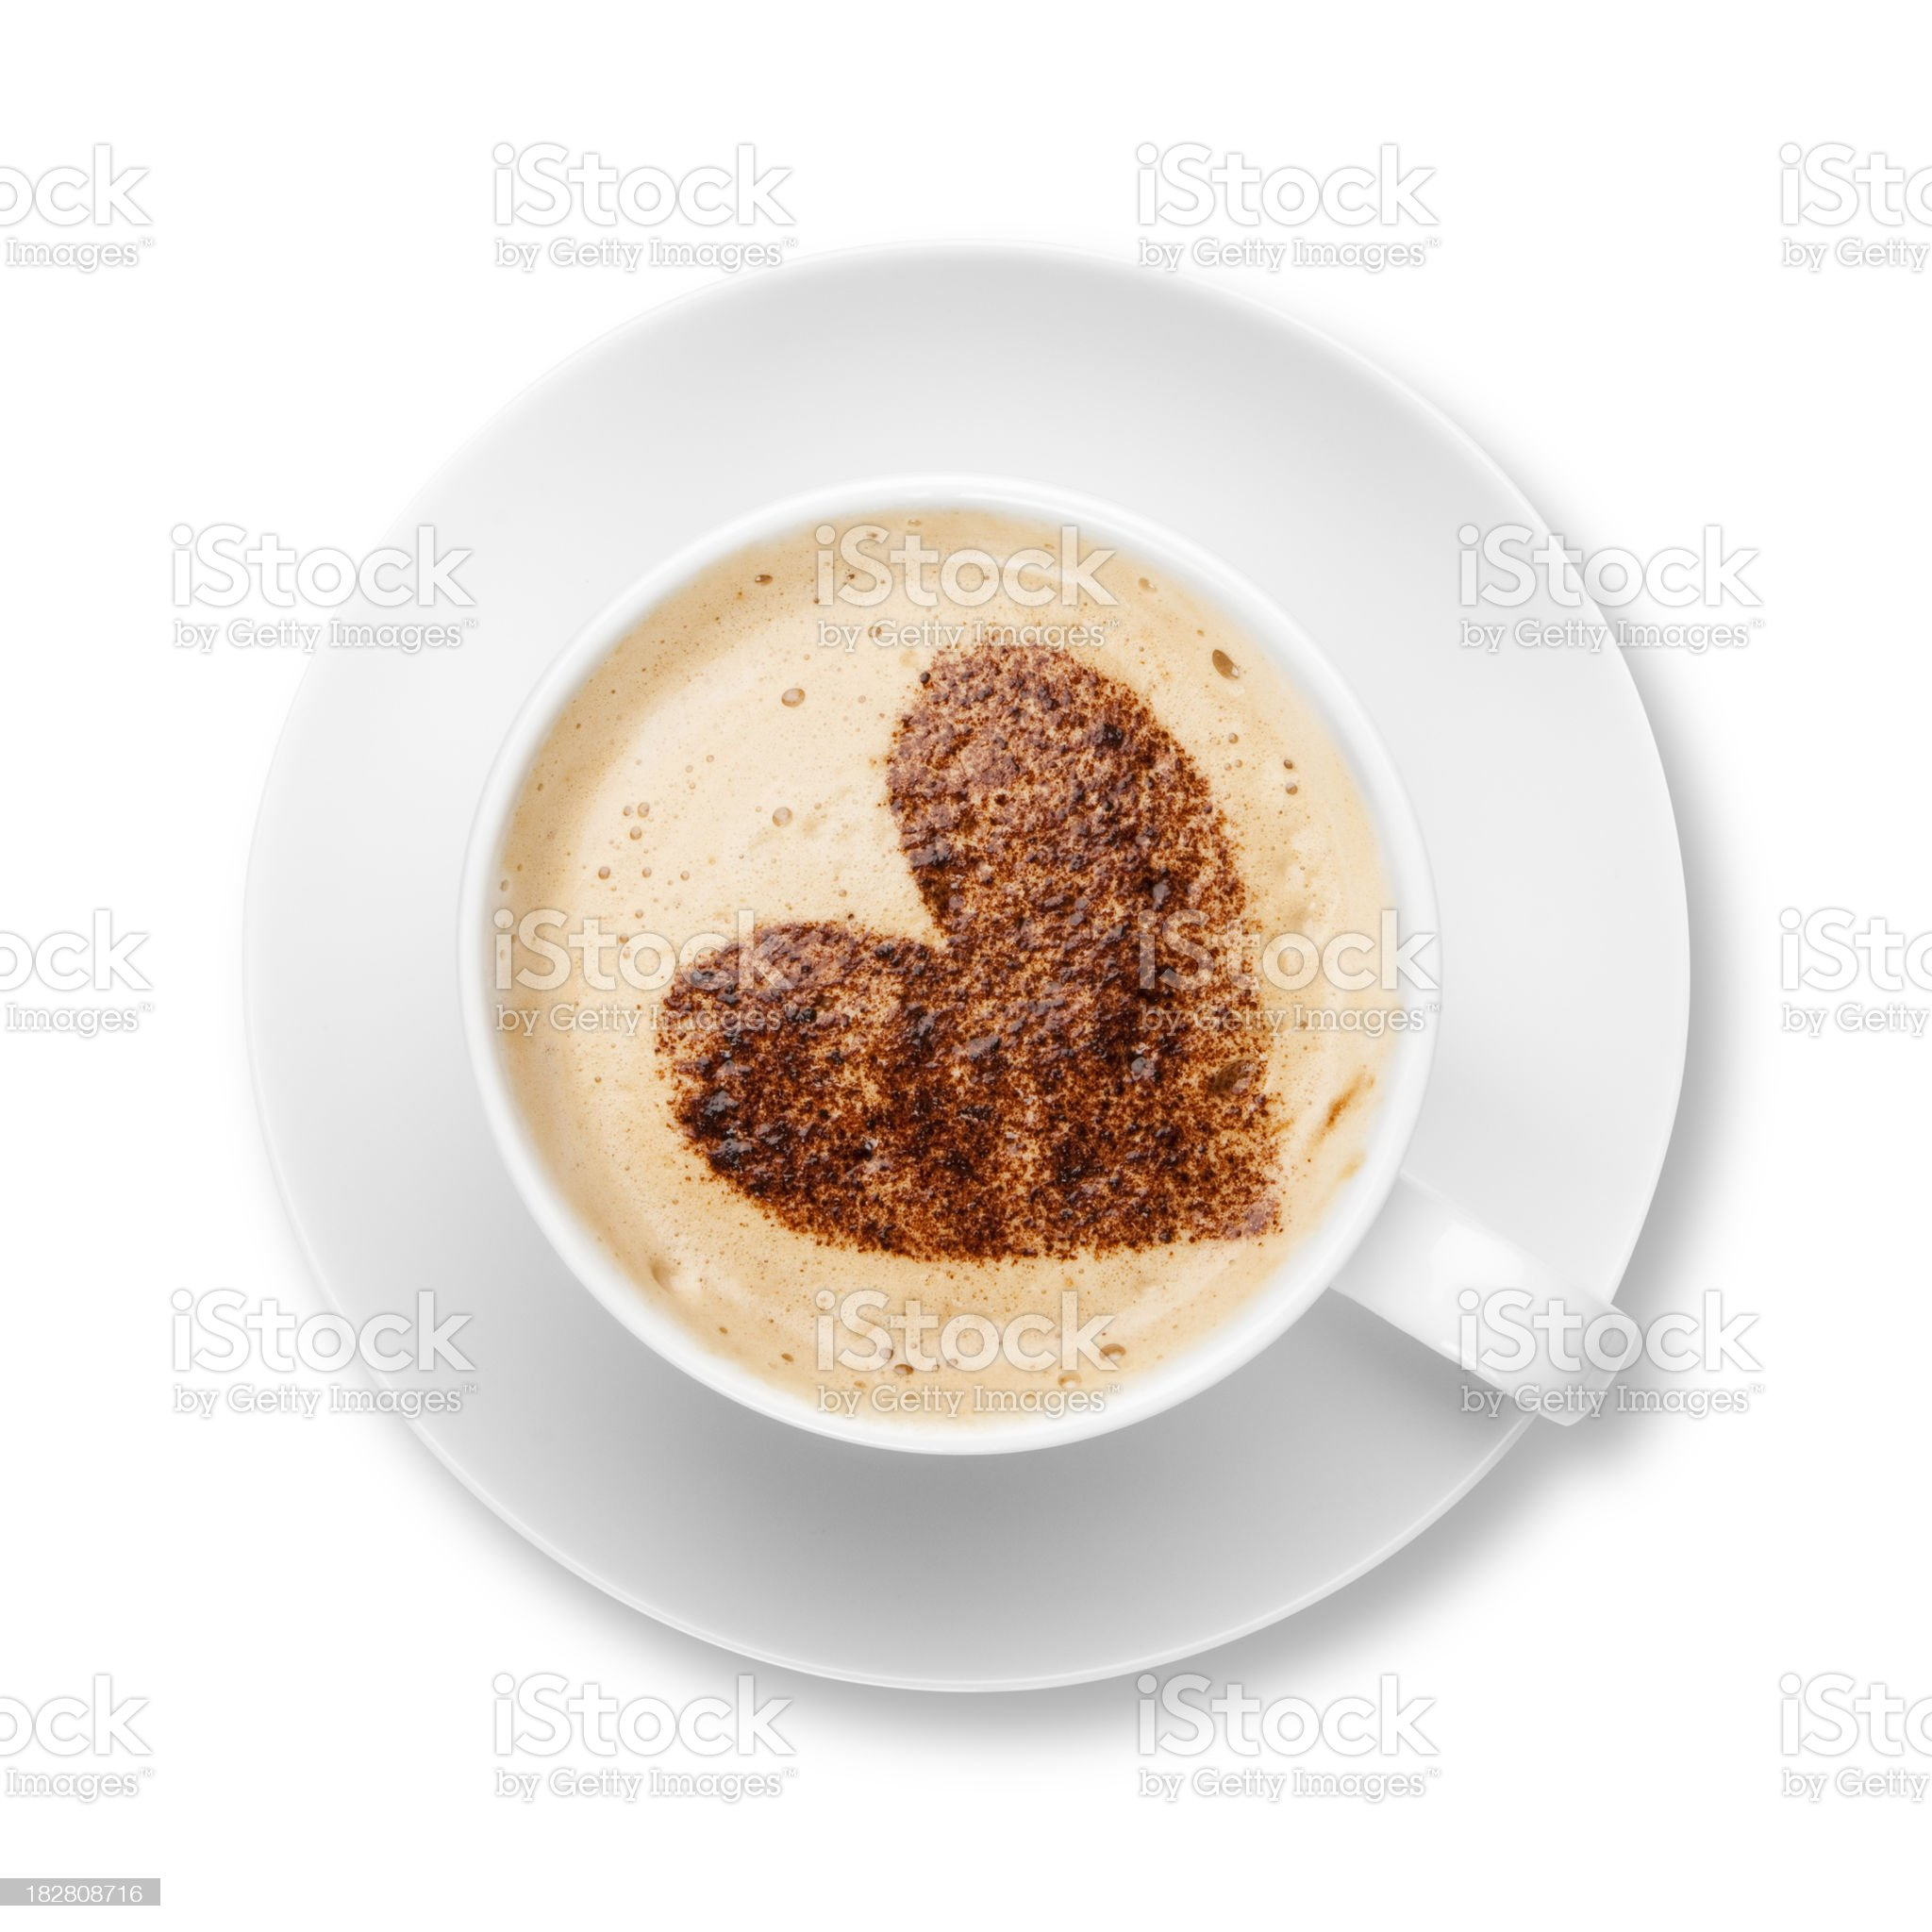 Cappuccino in white cup and saucer with chocolate heart royalty-free stock photo